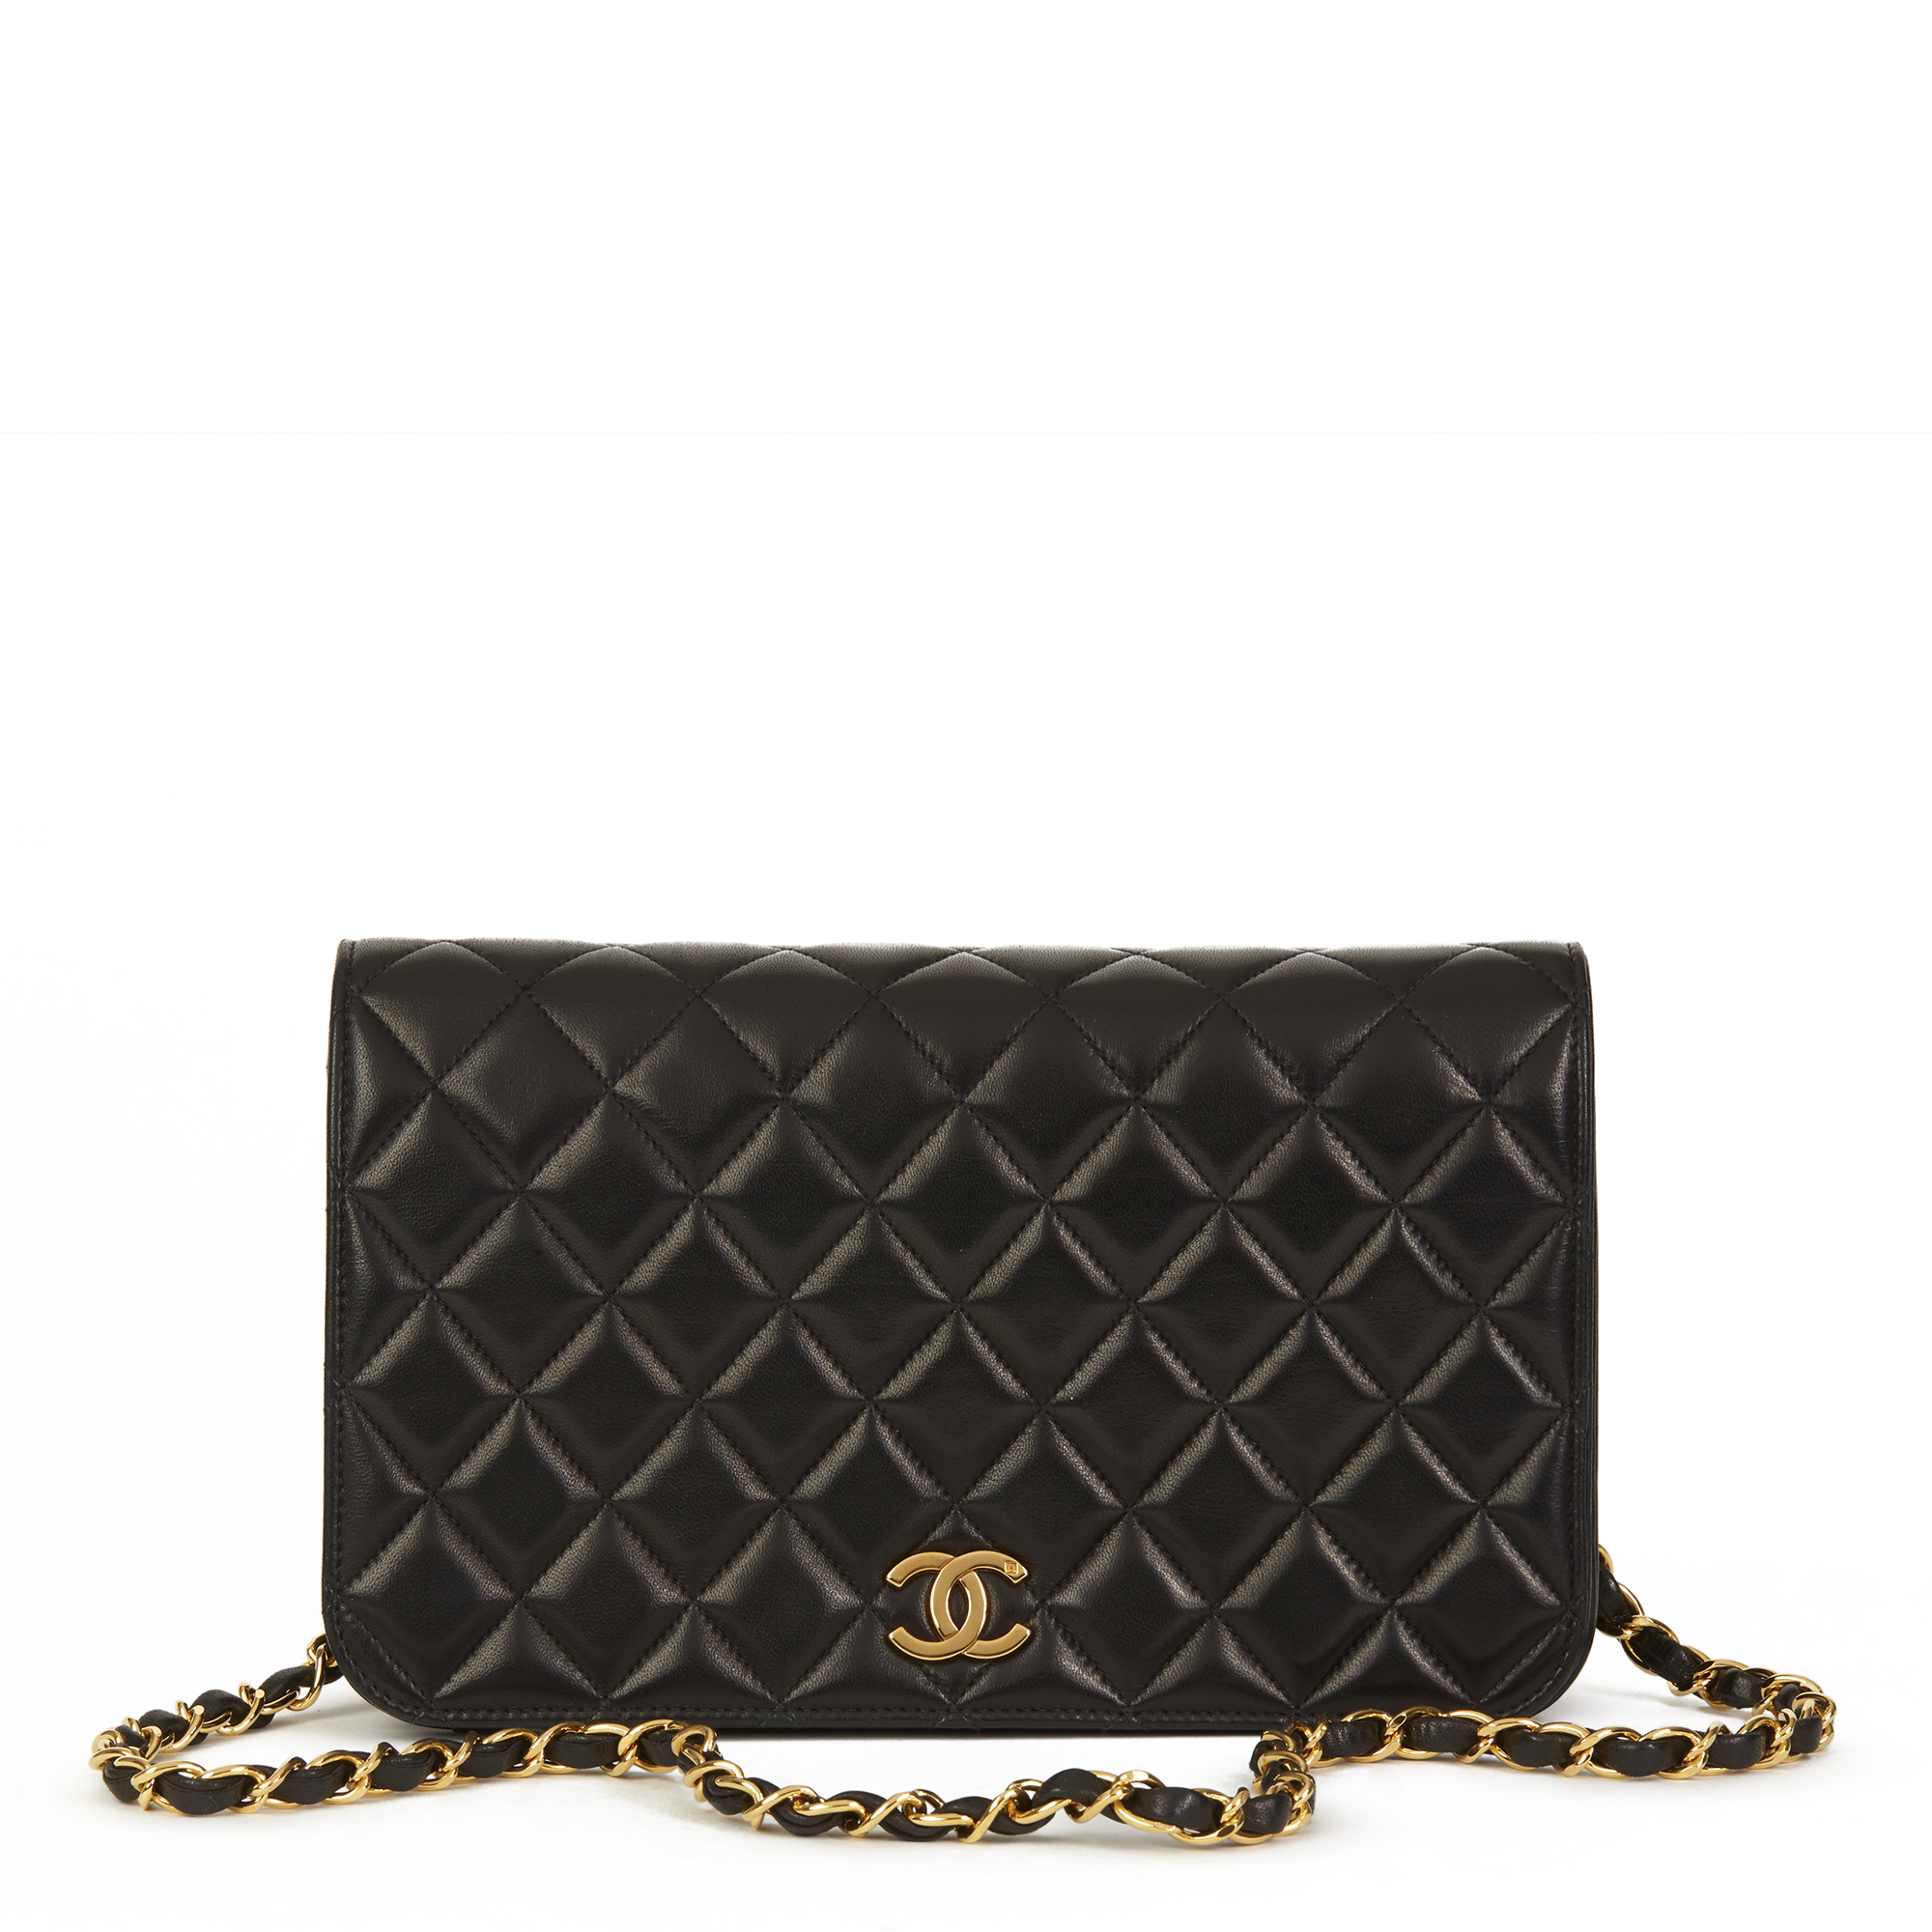 6df7e254cfa1 Chanel Small Black Quilted Handbag - Best Quilt Grafimage.co